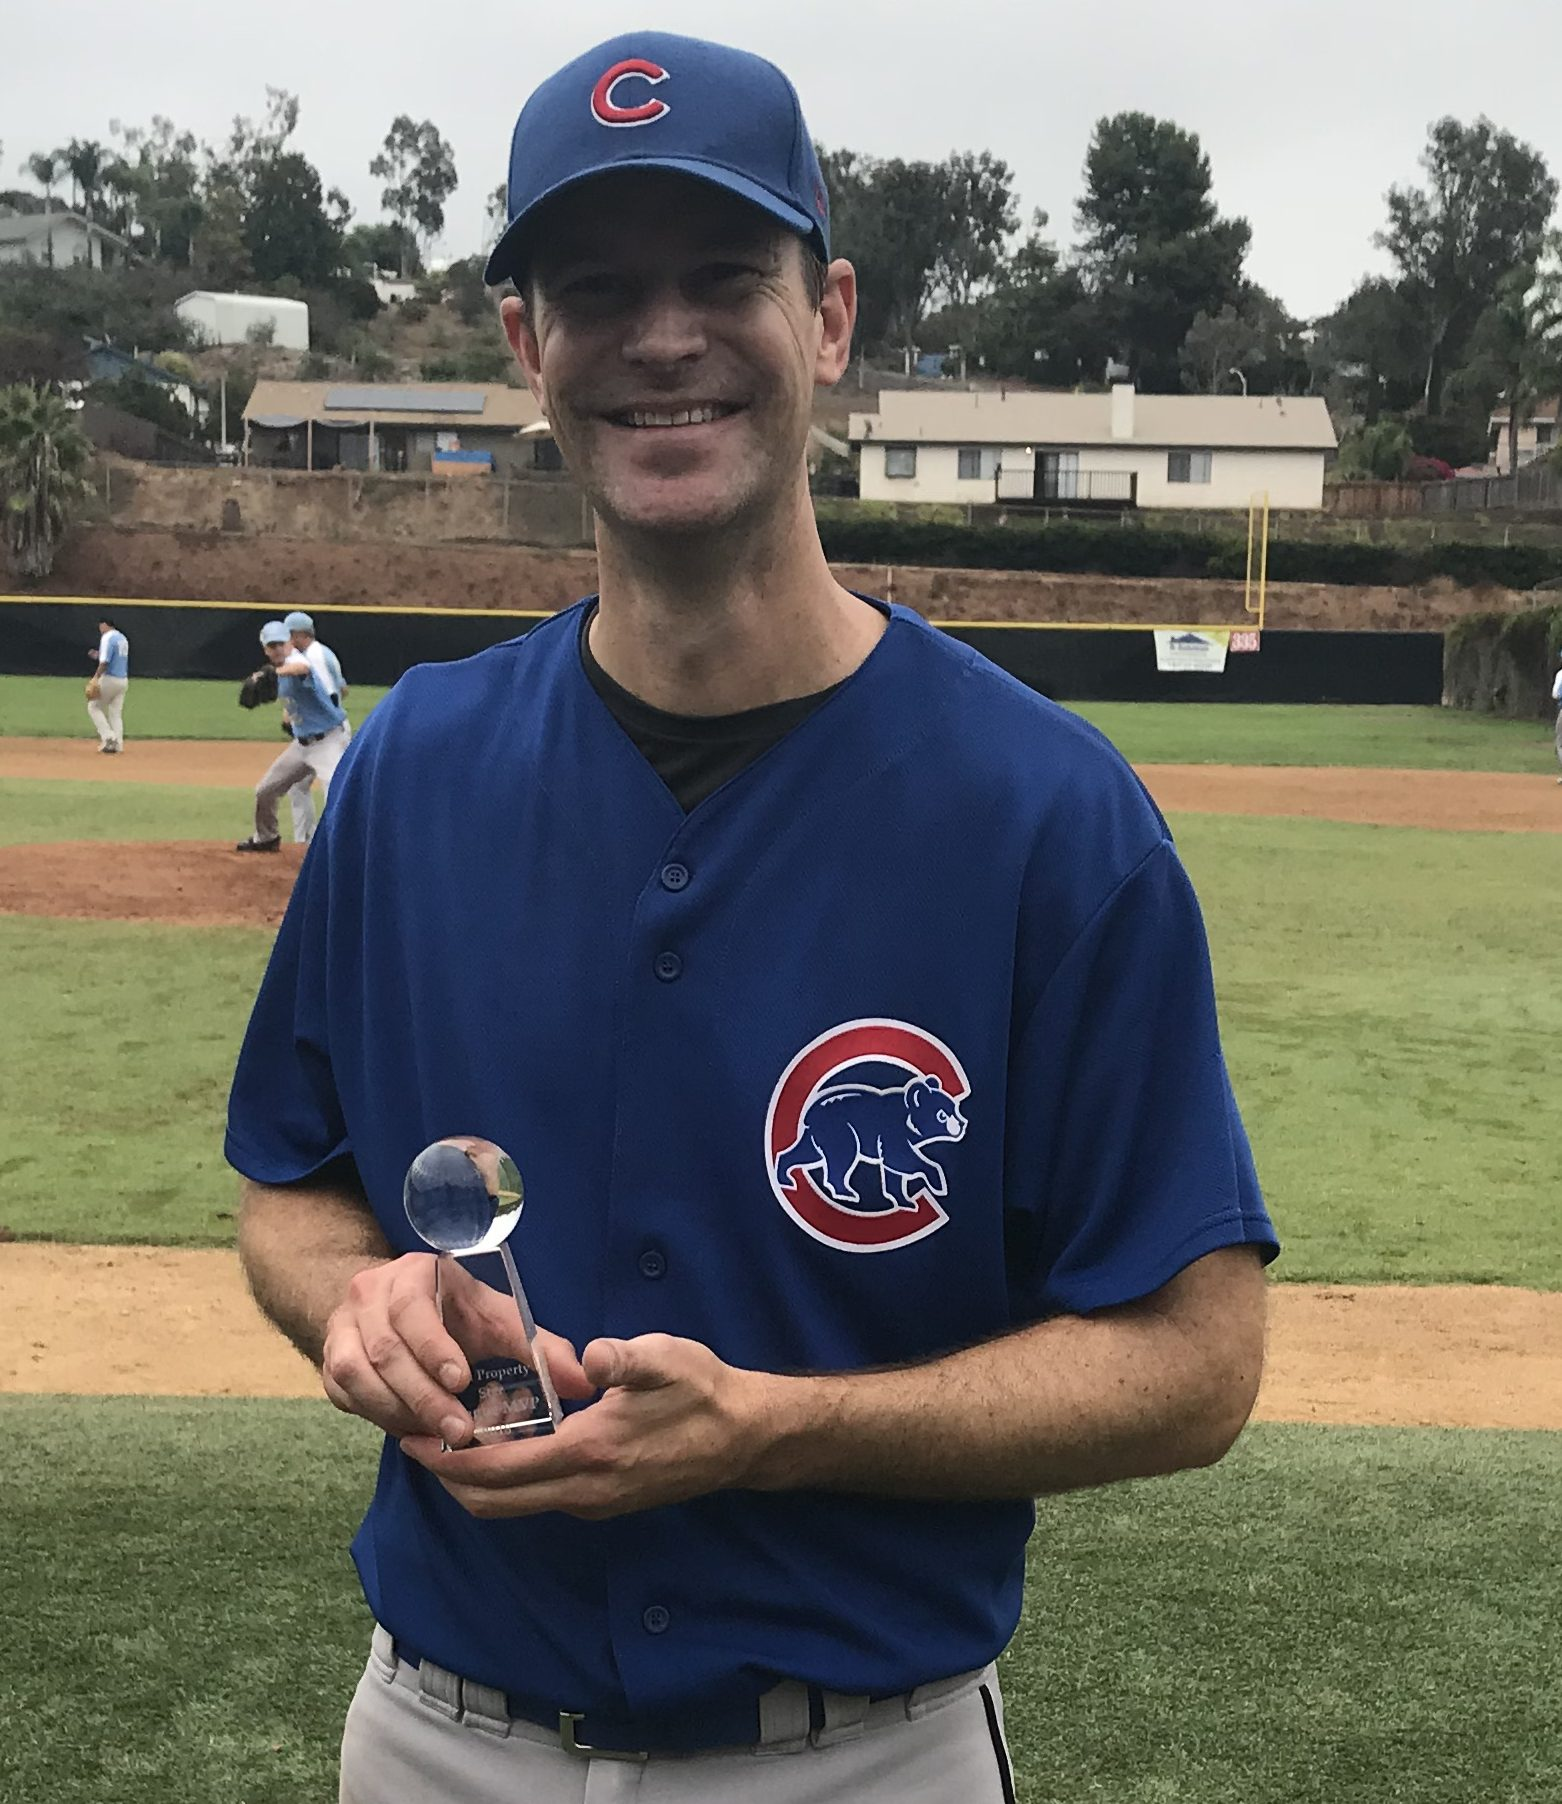 2018 REAL PROPERTY STAR MVP SUMMER MSBL 35+ DIVISION NORTH COUNTY CUBS MATT McNEIL